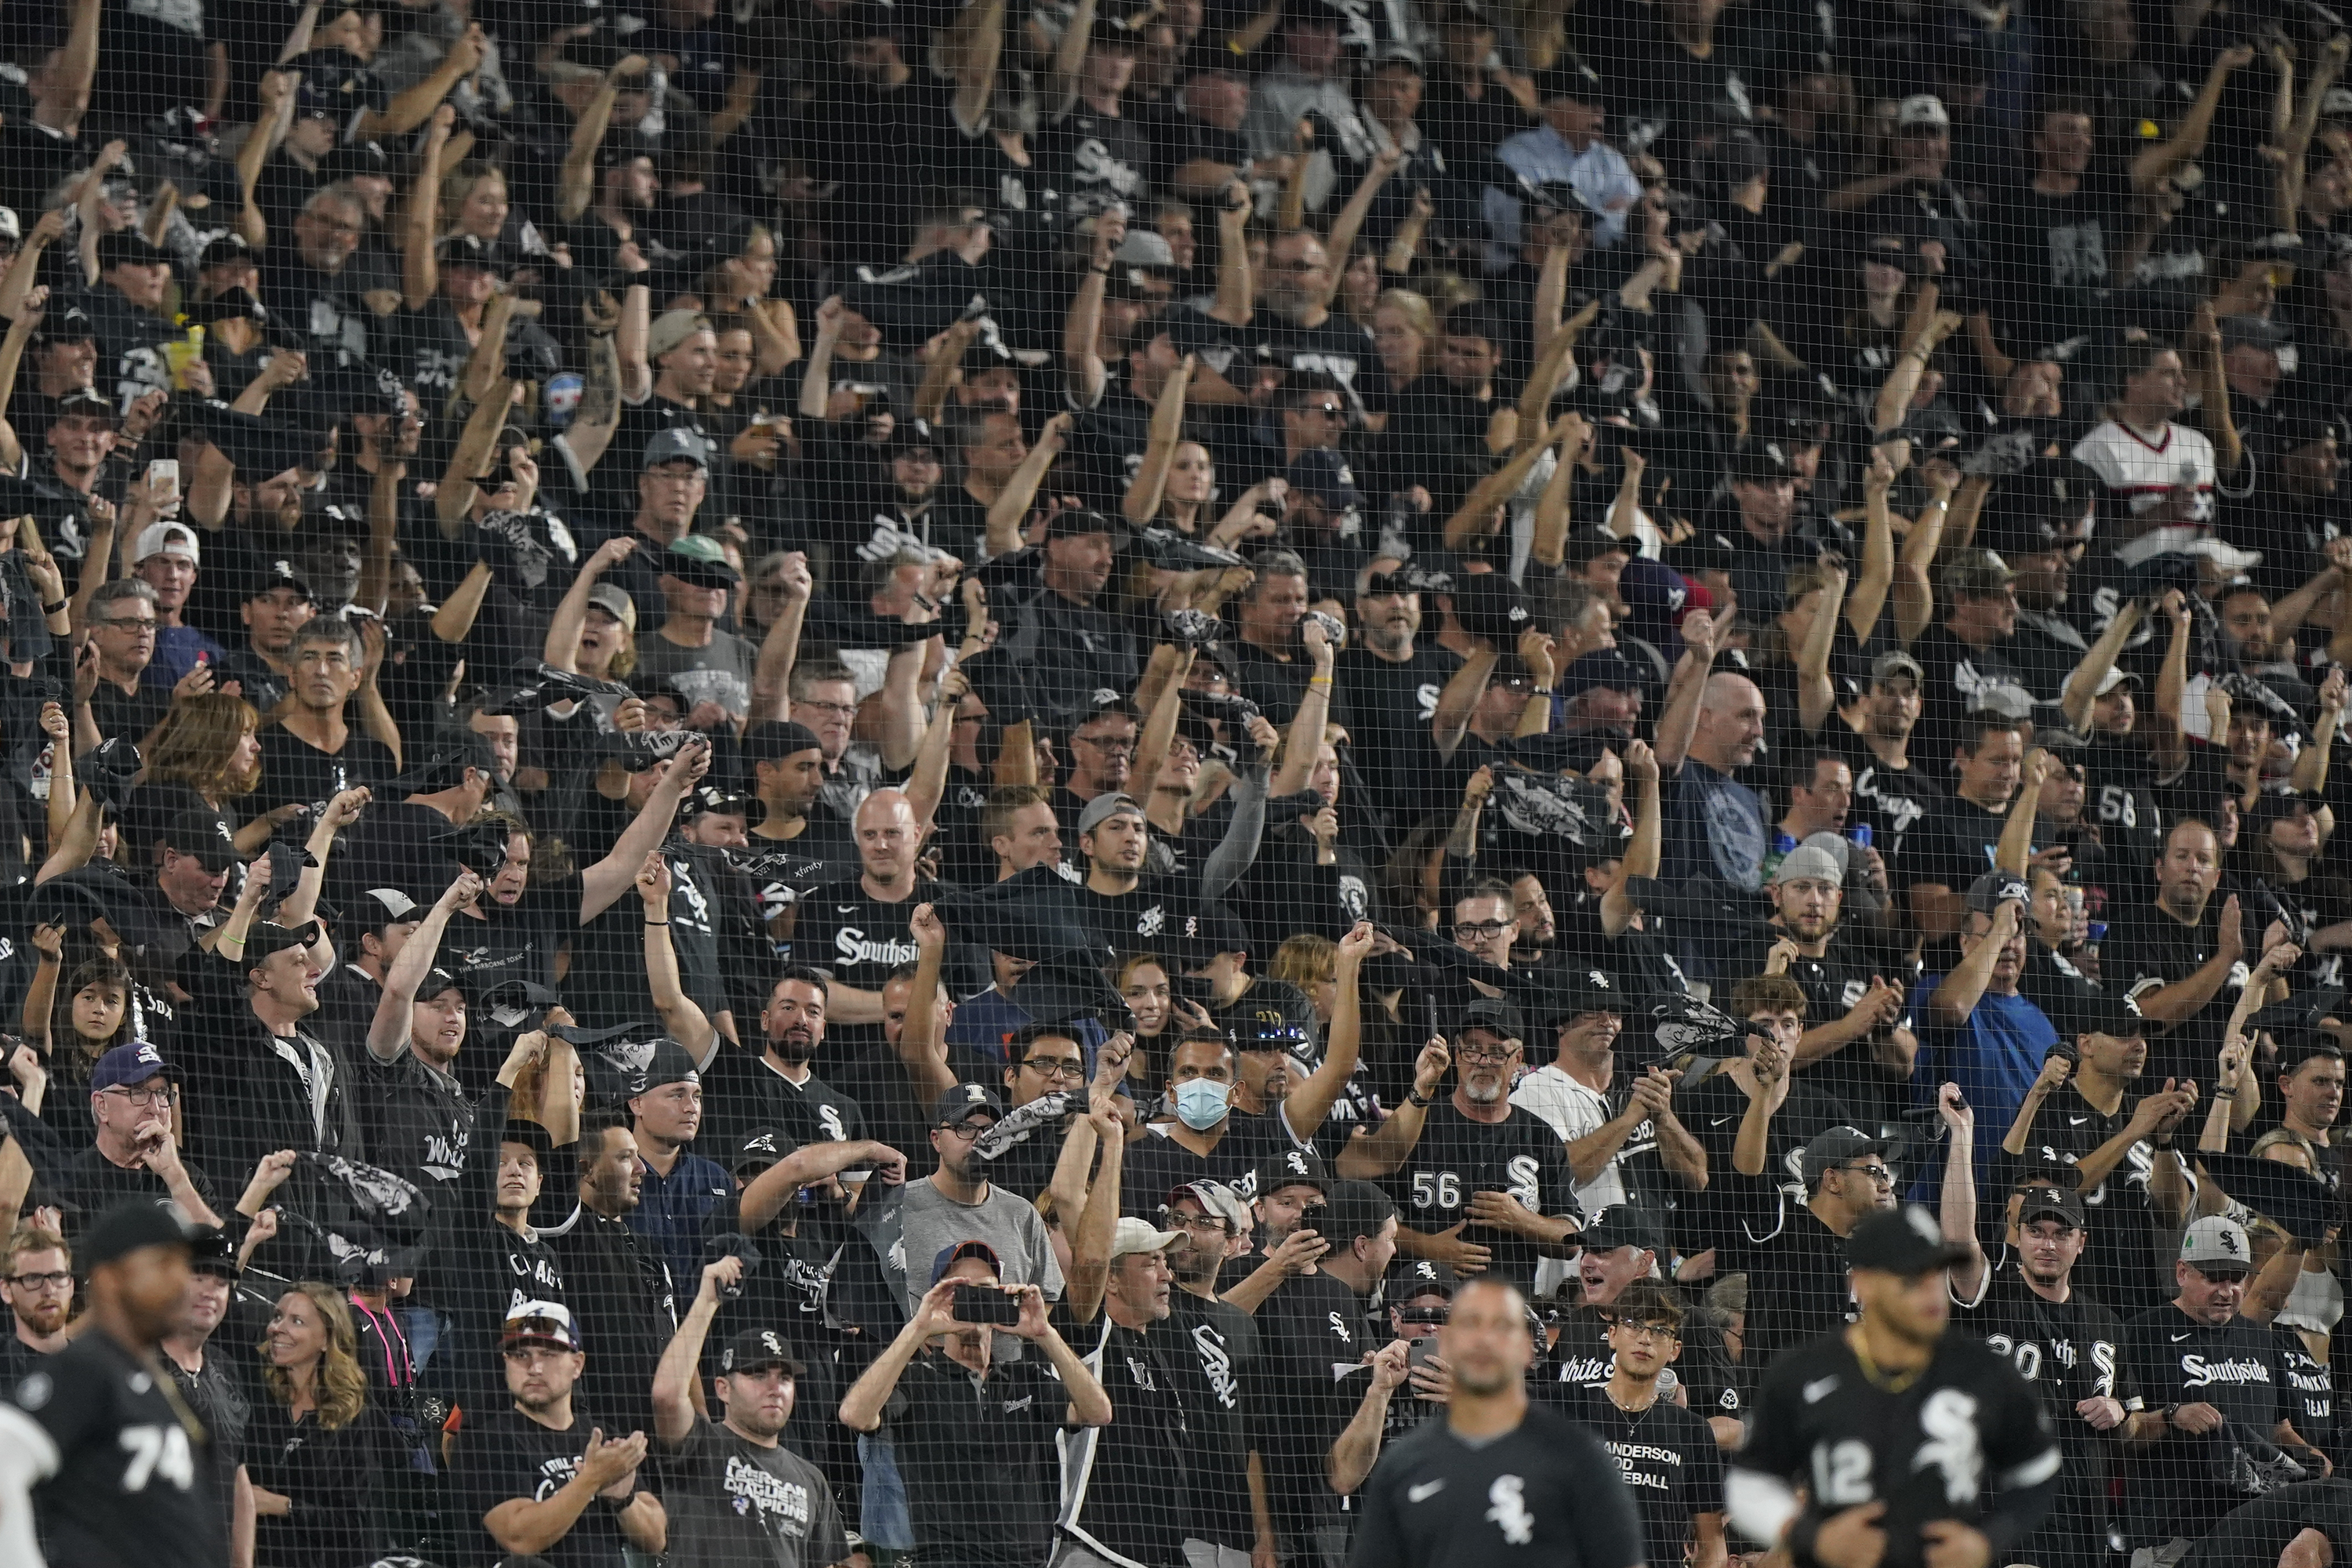 White Sox fans cheer before Game 3.